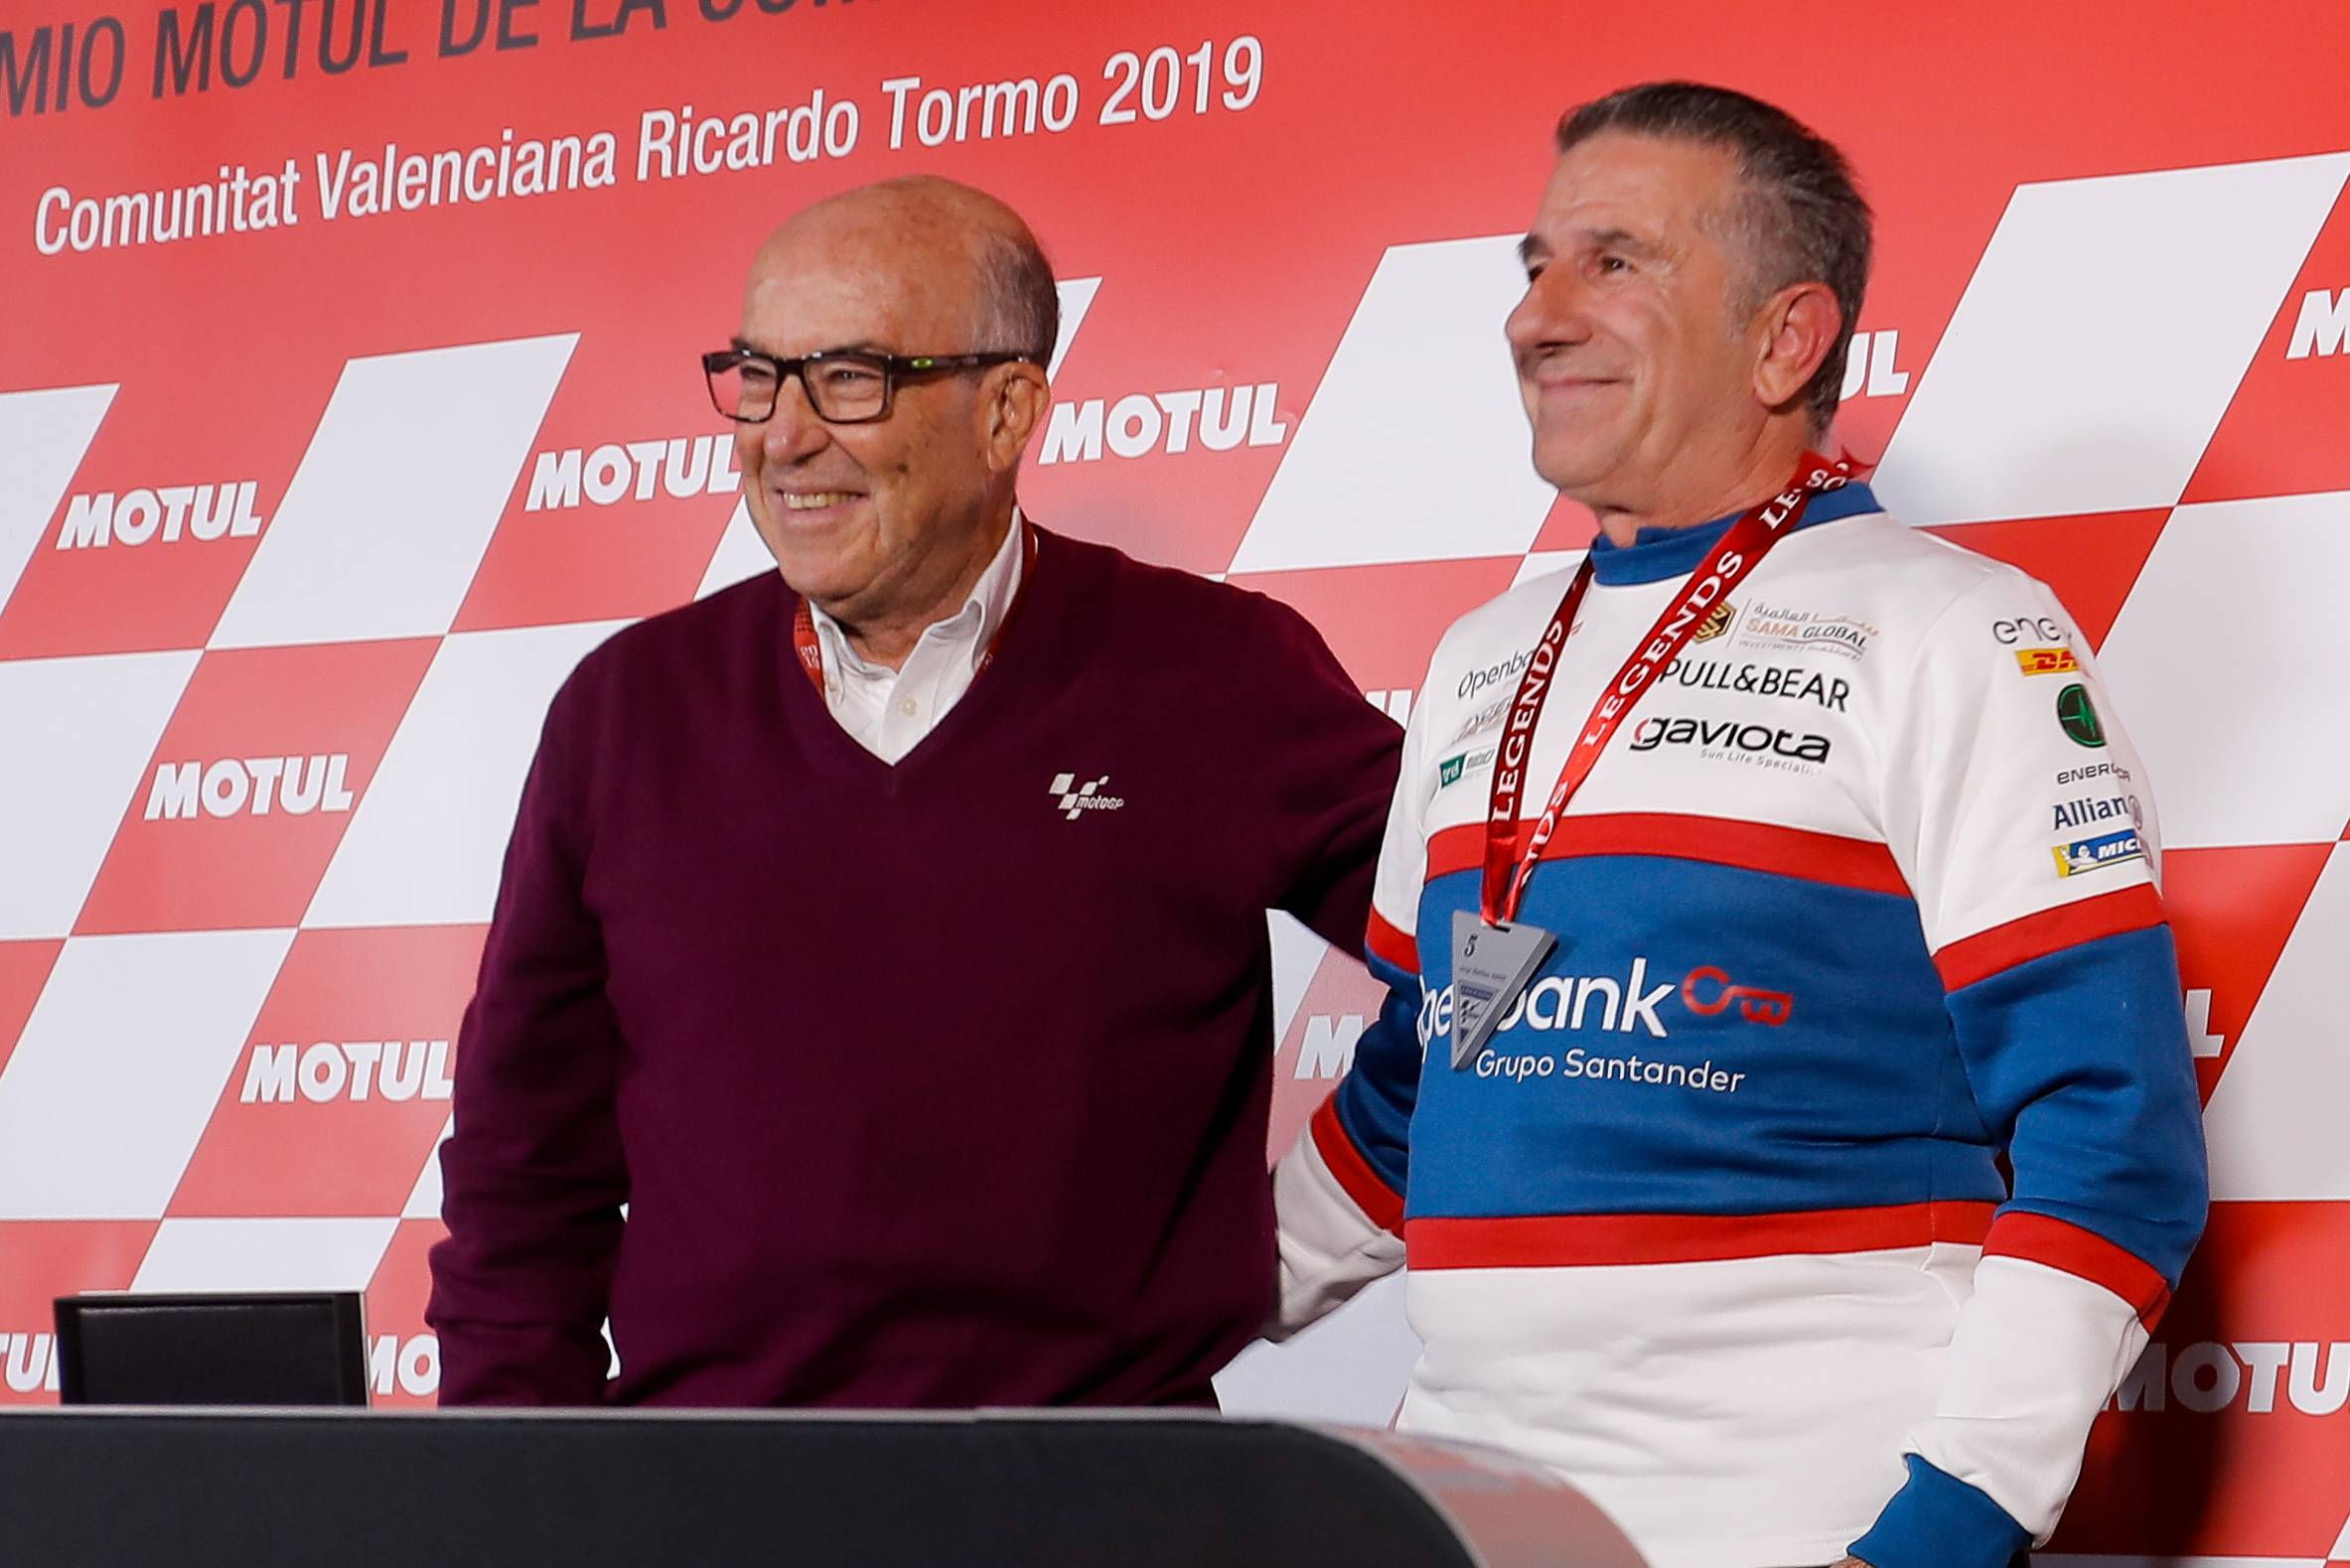 """Four-time World Champion Jorge Martínez """"Aspar"""" joins a select group of riders in the history of Grand Prix racing, including the likes of Ángel Nieto and Giacomo Agostini, as a MotoGP Legend."""